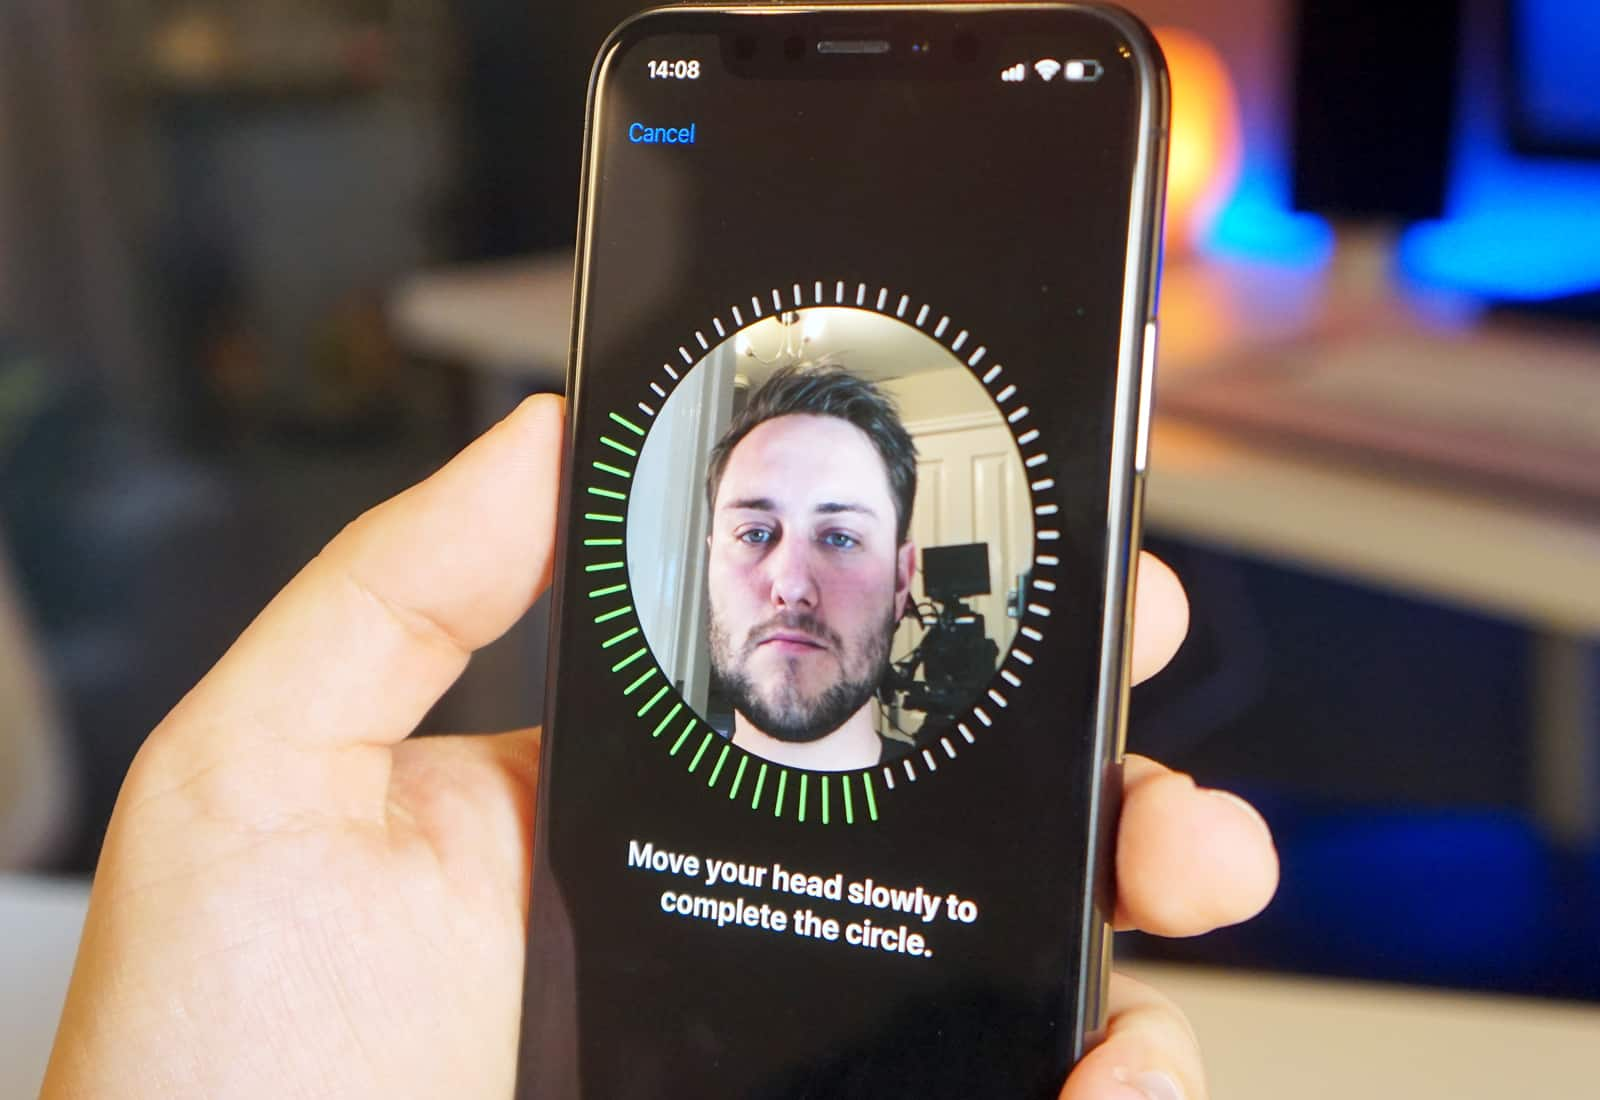 Face ID can now recognize a second person